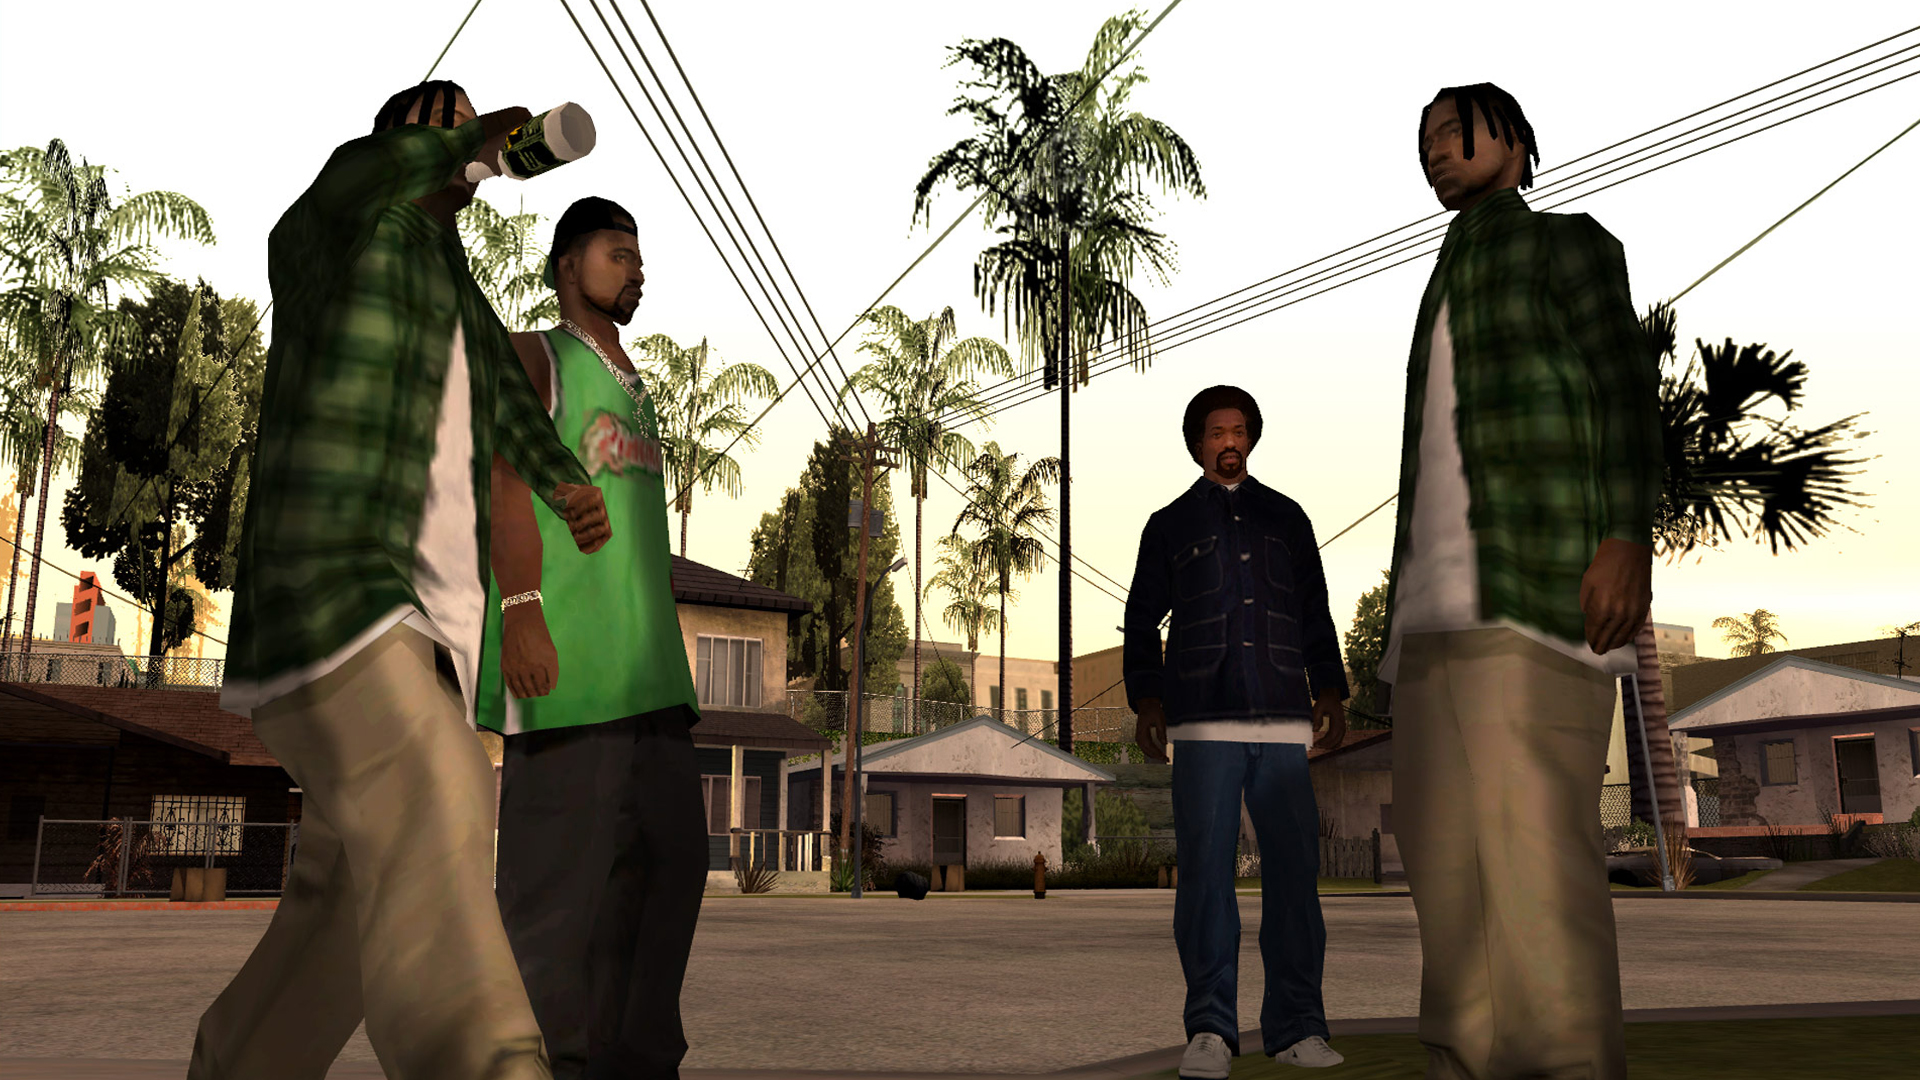 The Rockstar Games Launcher is here, and it comes with GTA: San Andreas for free